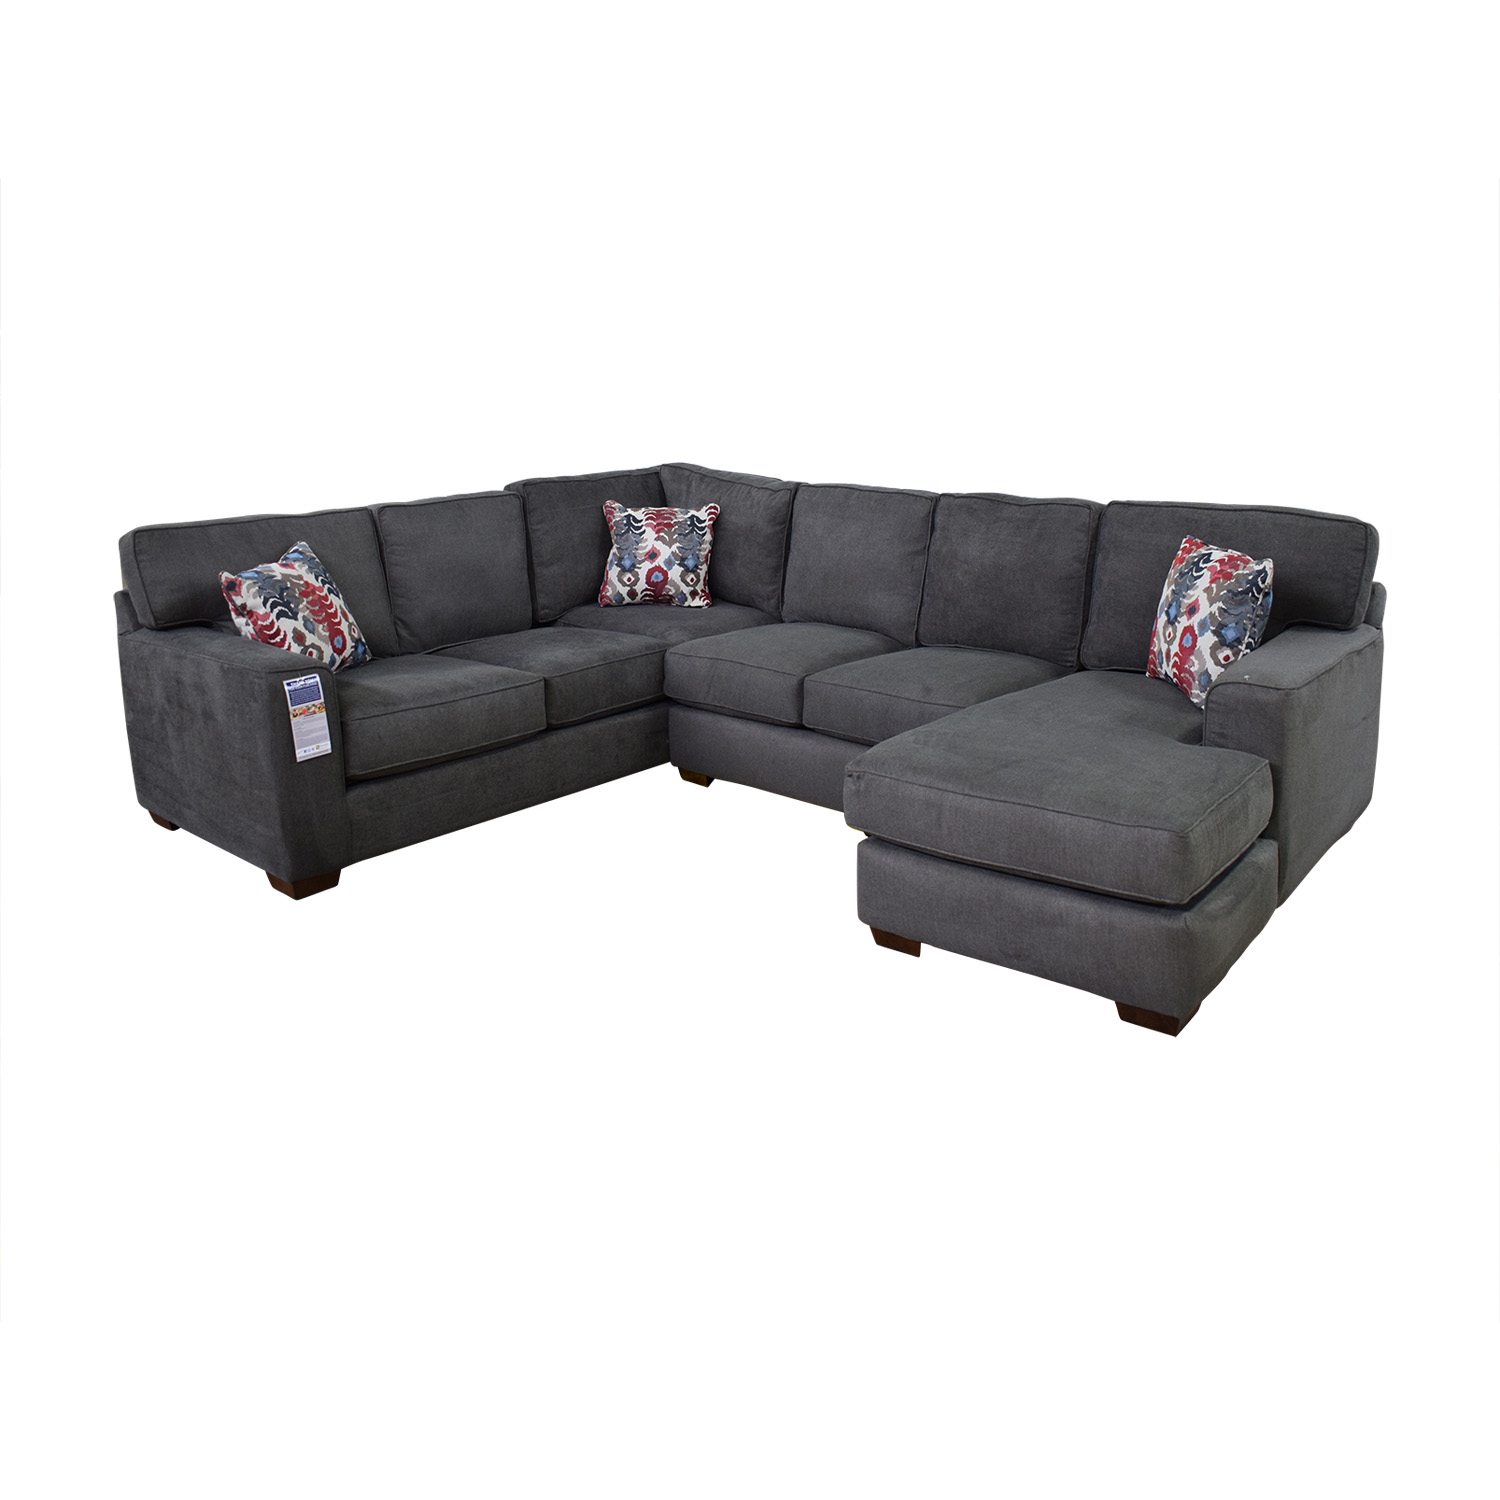 buy Klaussner Abbott Three-Piece Chaise Sectional Sofa Klaussner